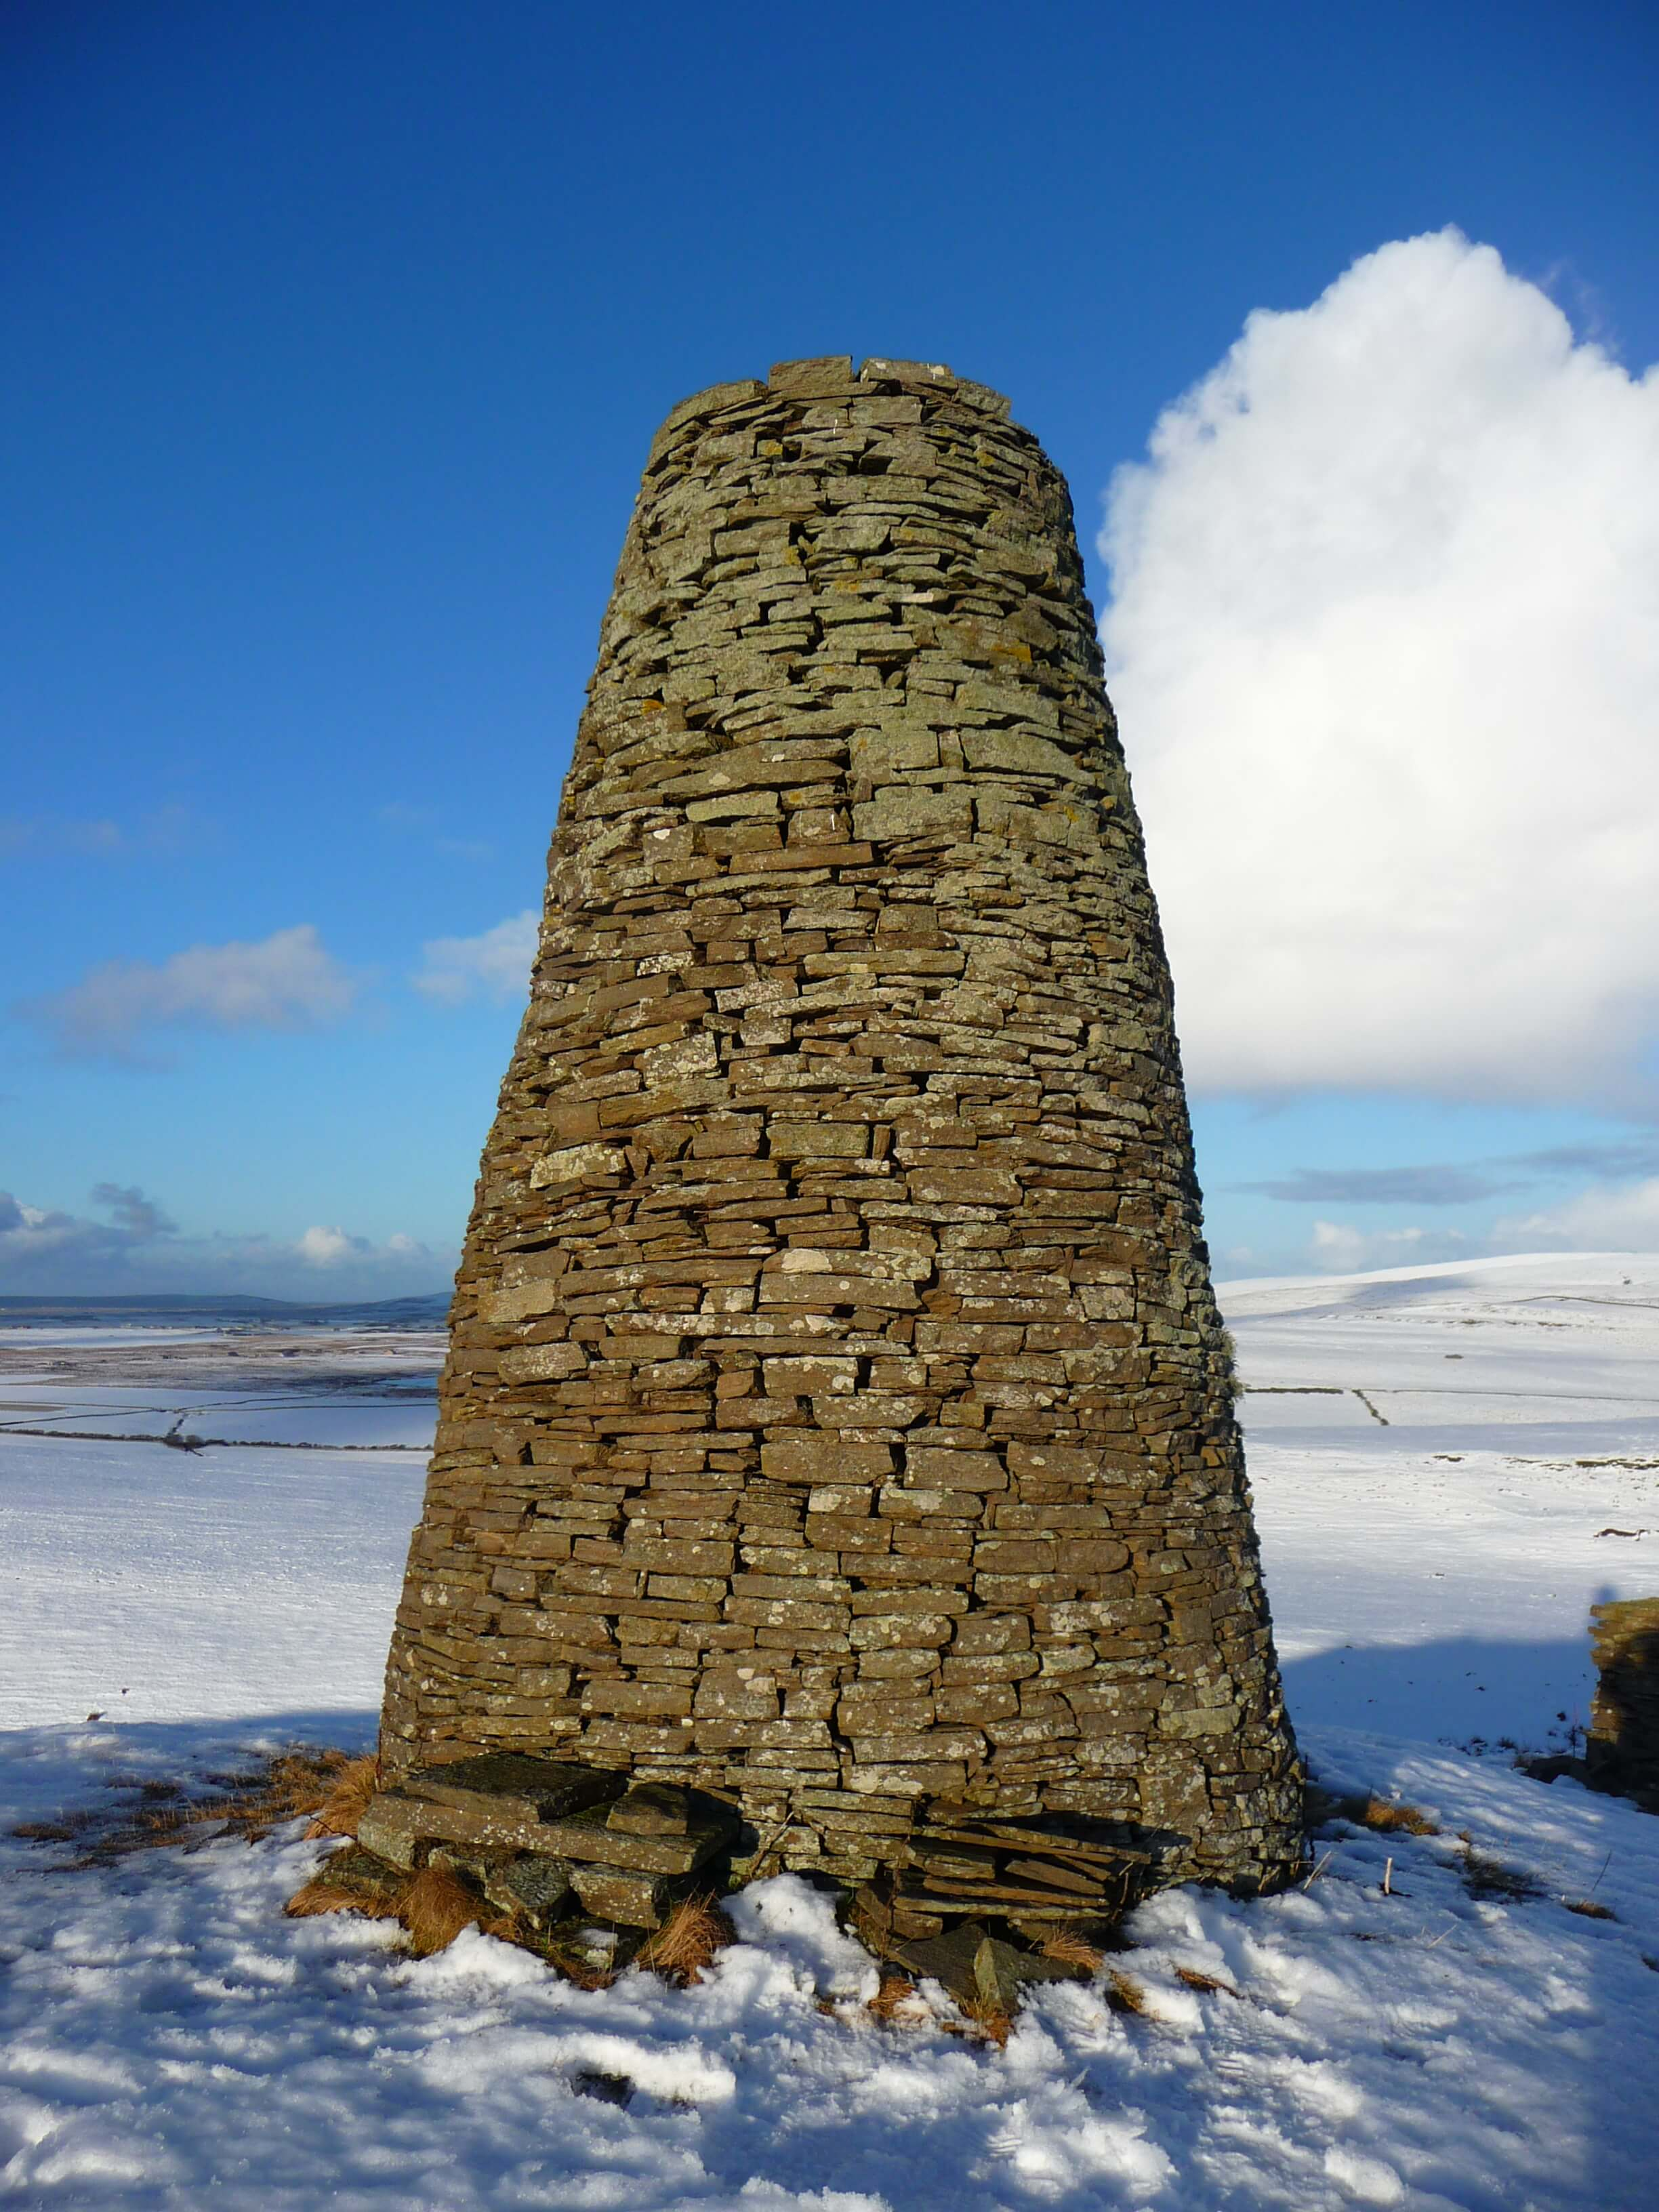 Buckle's Tower, Firth, Orkney Islands, Scotland